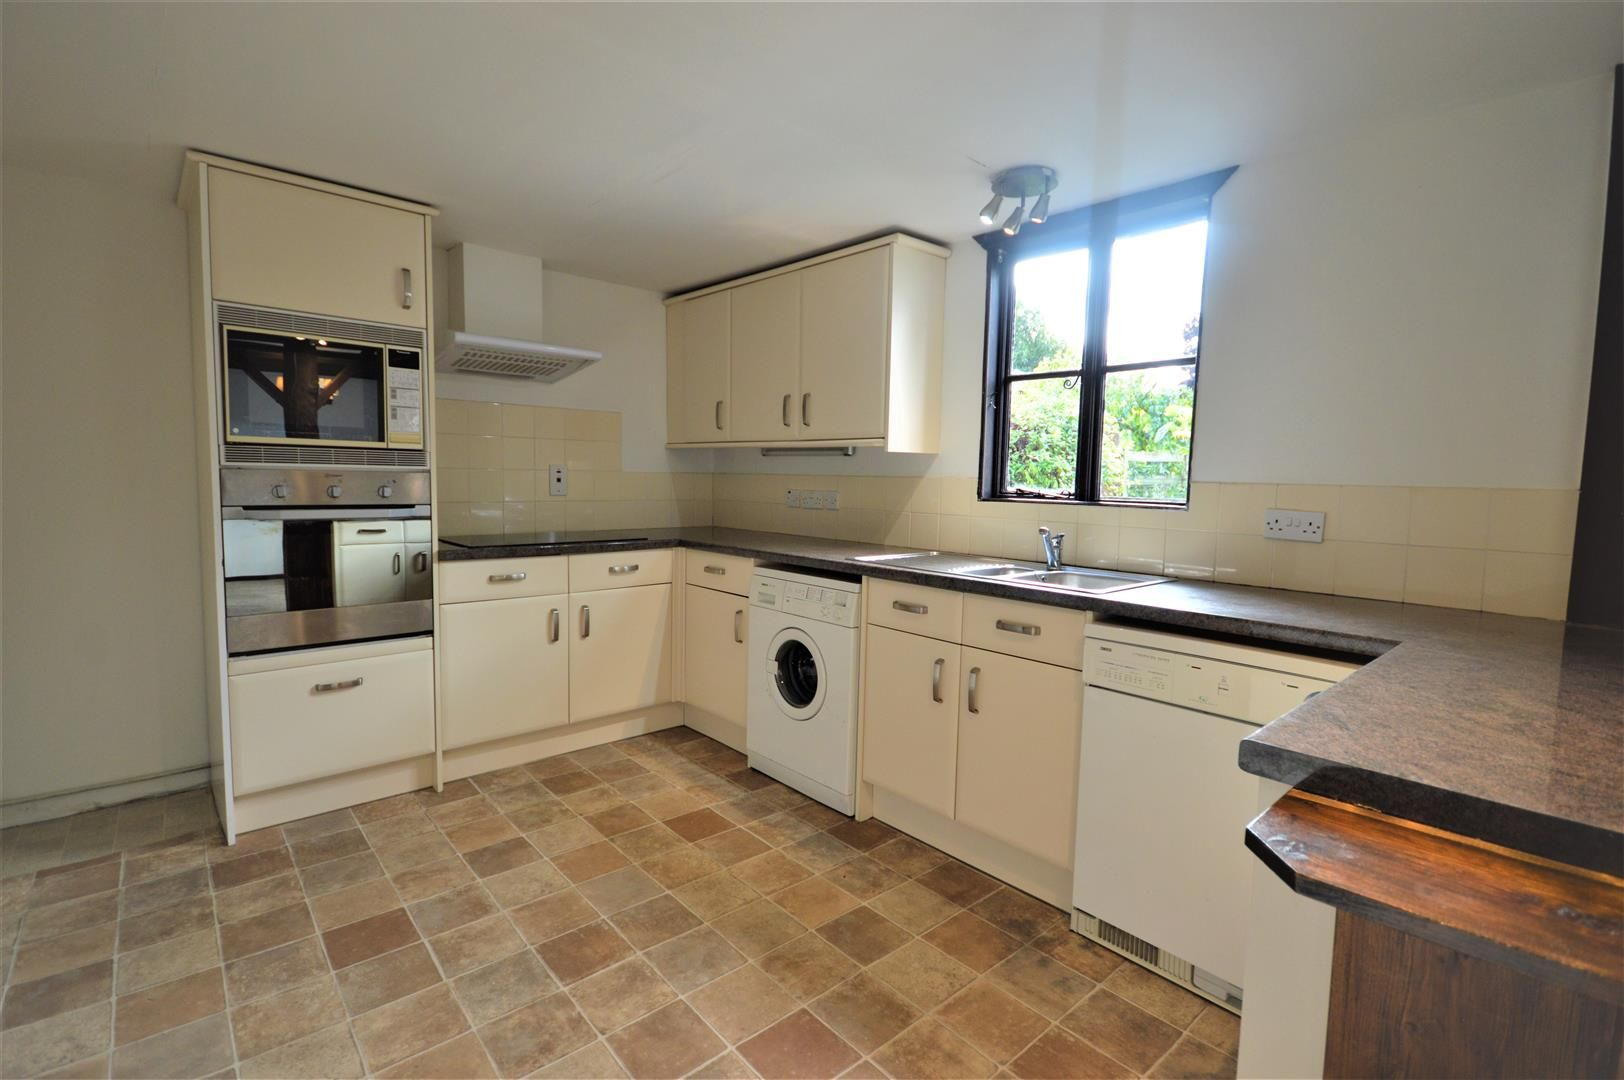 3 bed end of terrace for sale in Luston  - Property Image 5